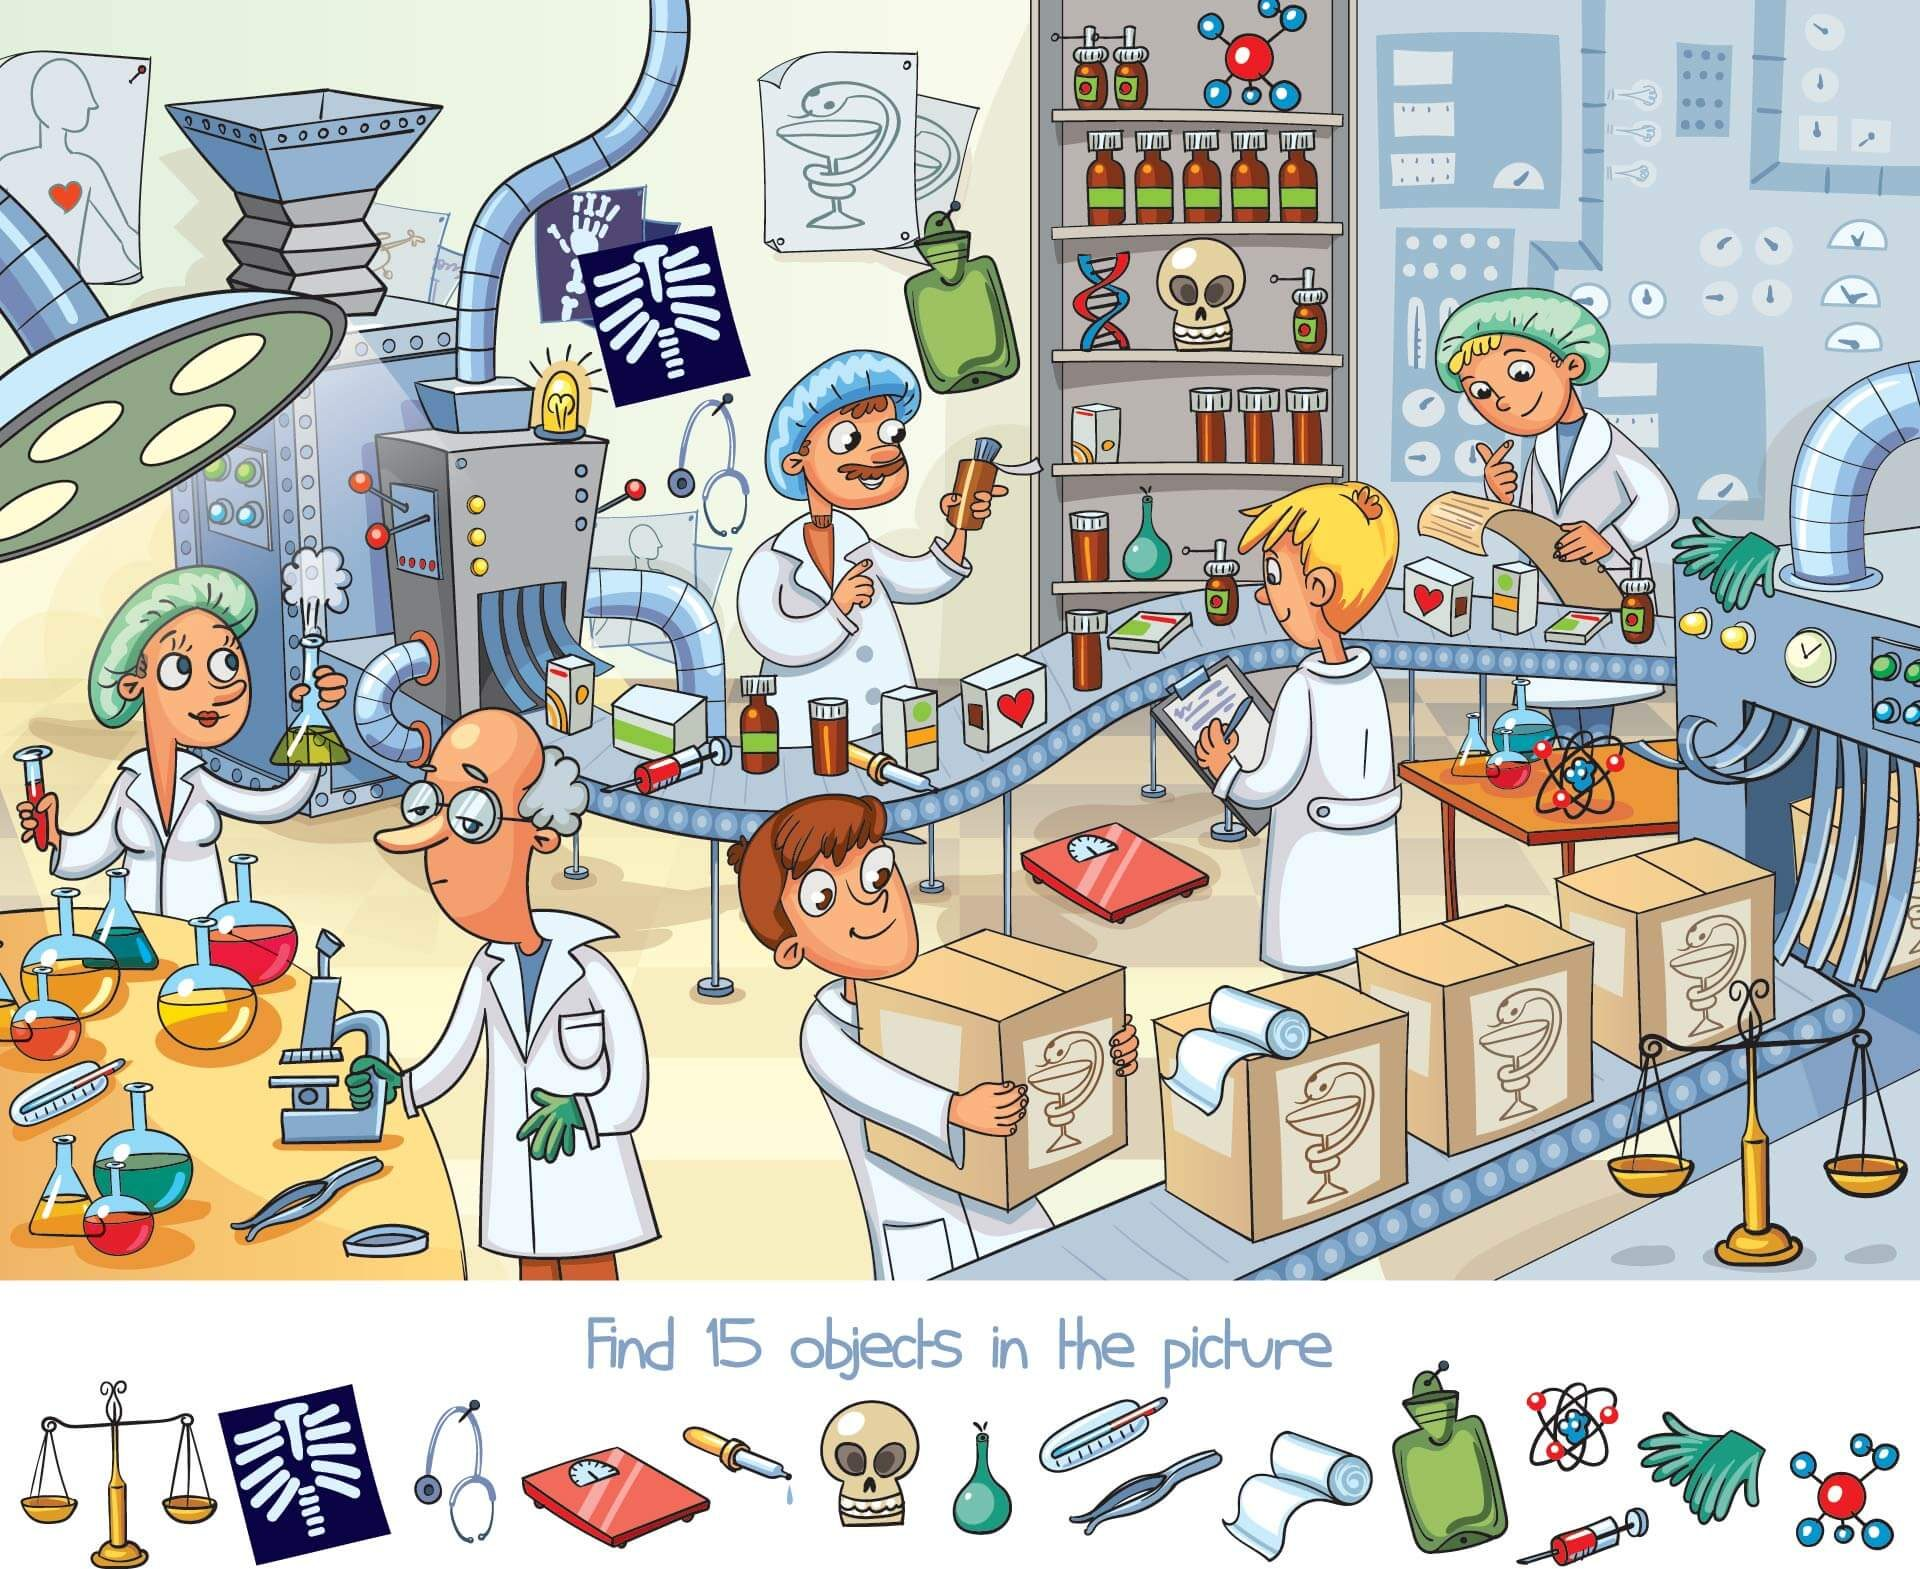 Can You Find The 15 Objects Hidden In This Picture